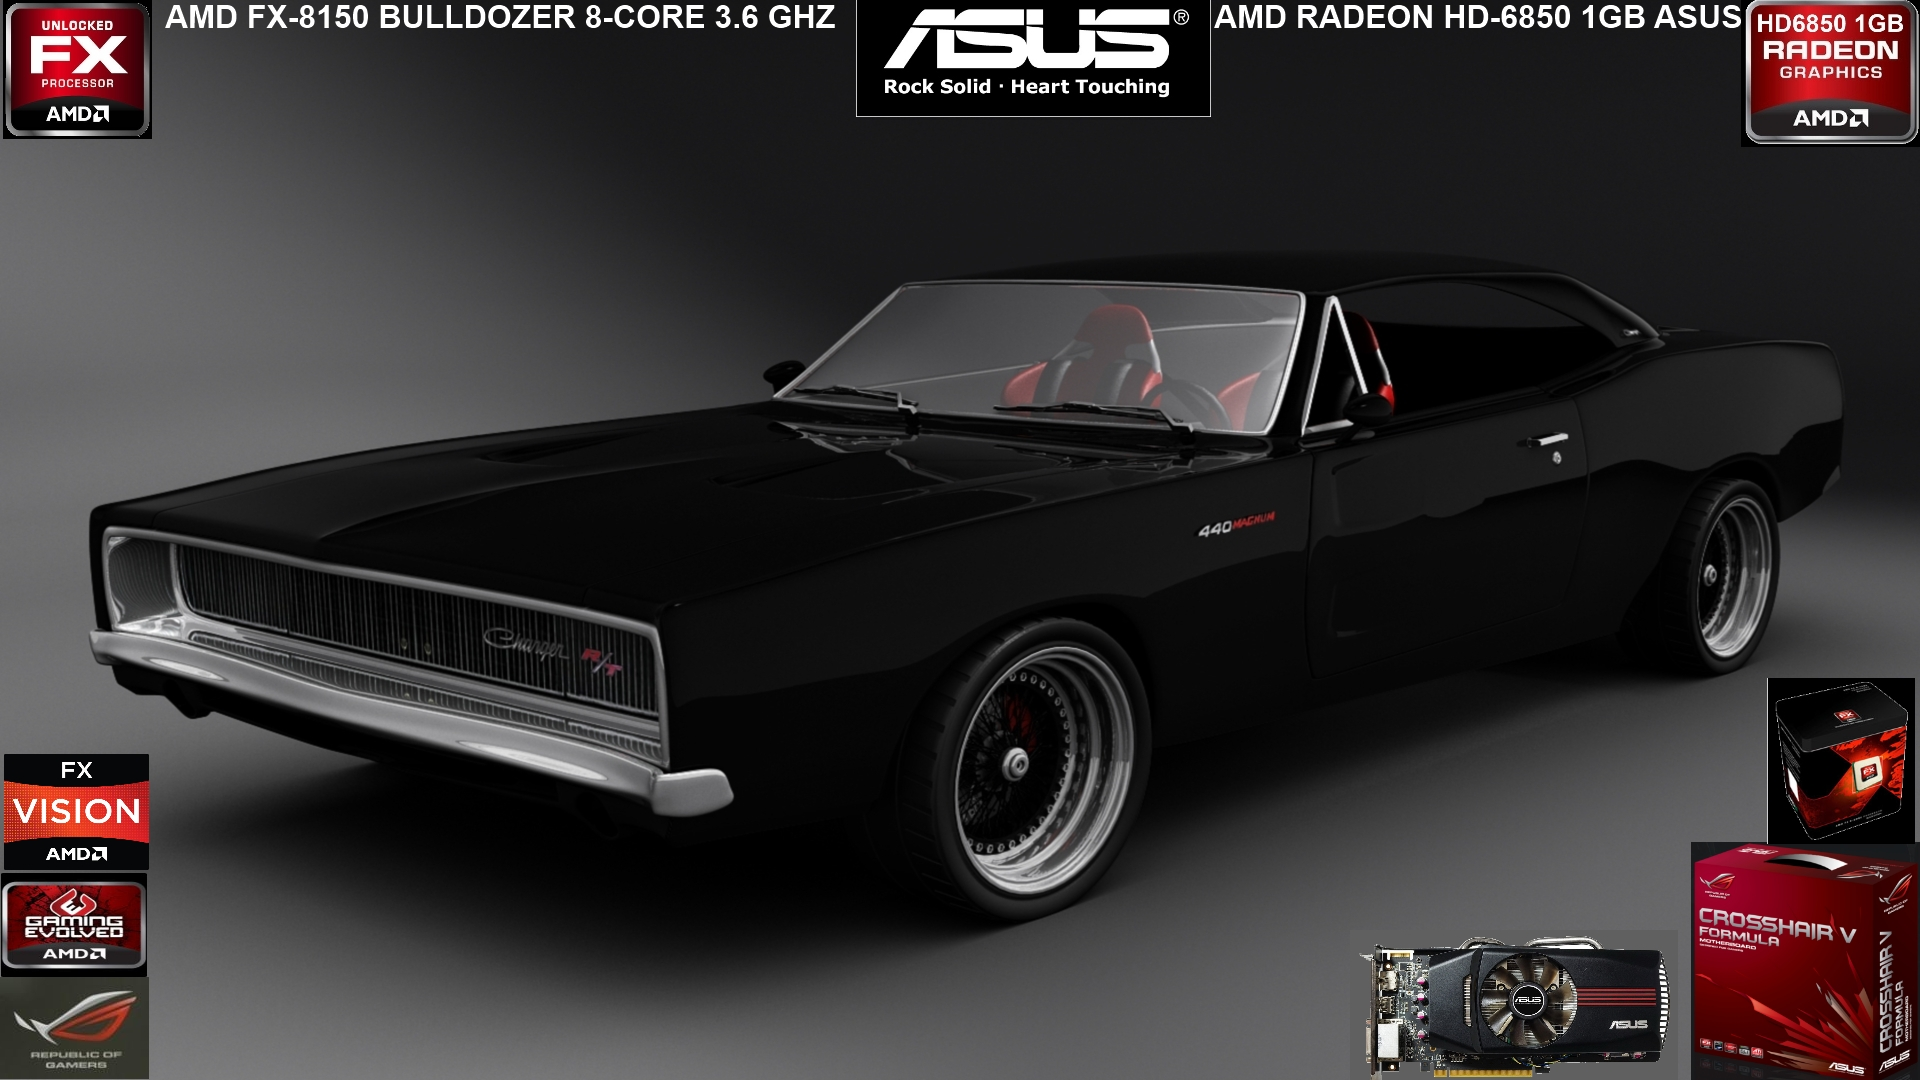 Dodge_Charger_WIP_by_kErngesund.jpg